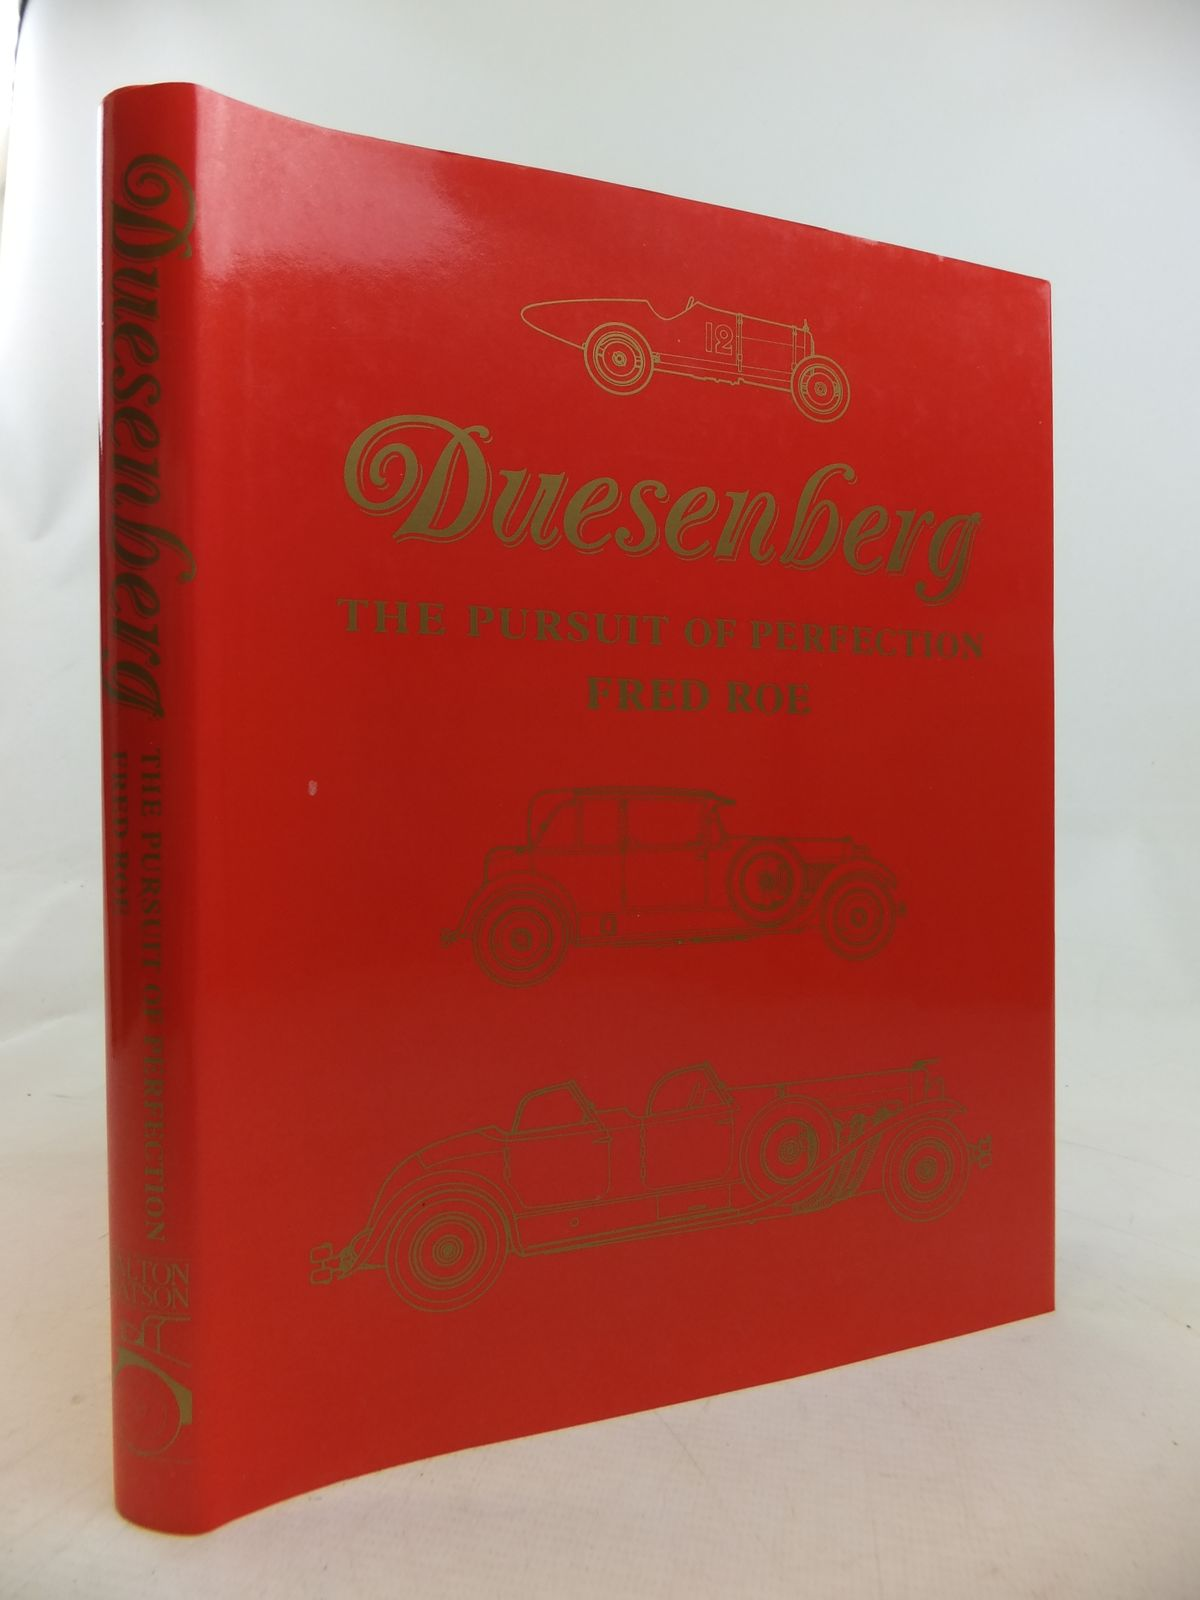 Photo of DUESENBERG THE PURSUIT OF PERFECTION written by Roe, Fred published by Dalton Watson (STOCK CODE: 2116947)  for sale by Stella & Rose's Books